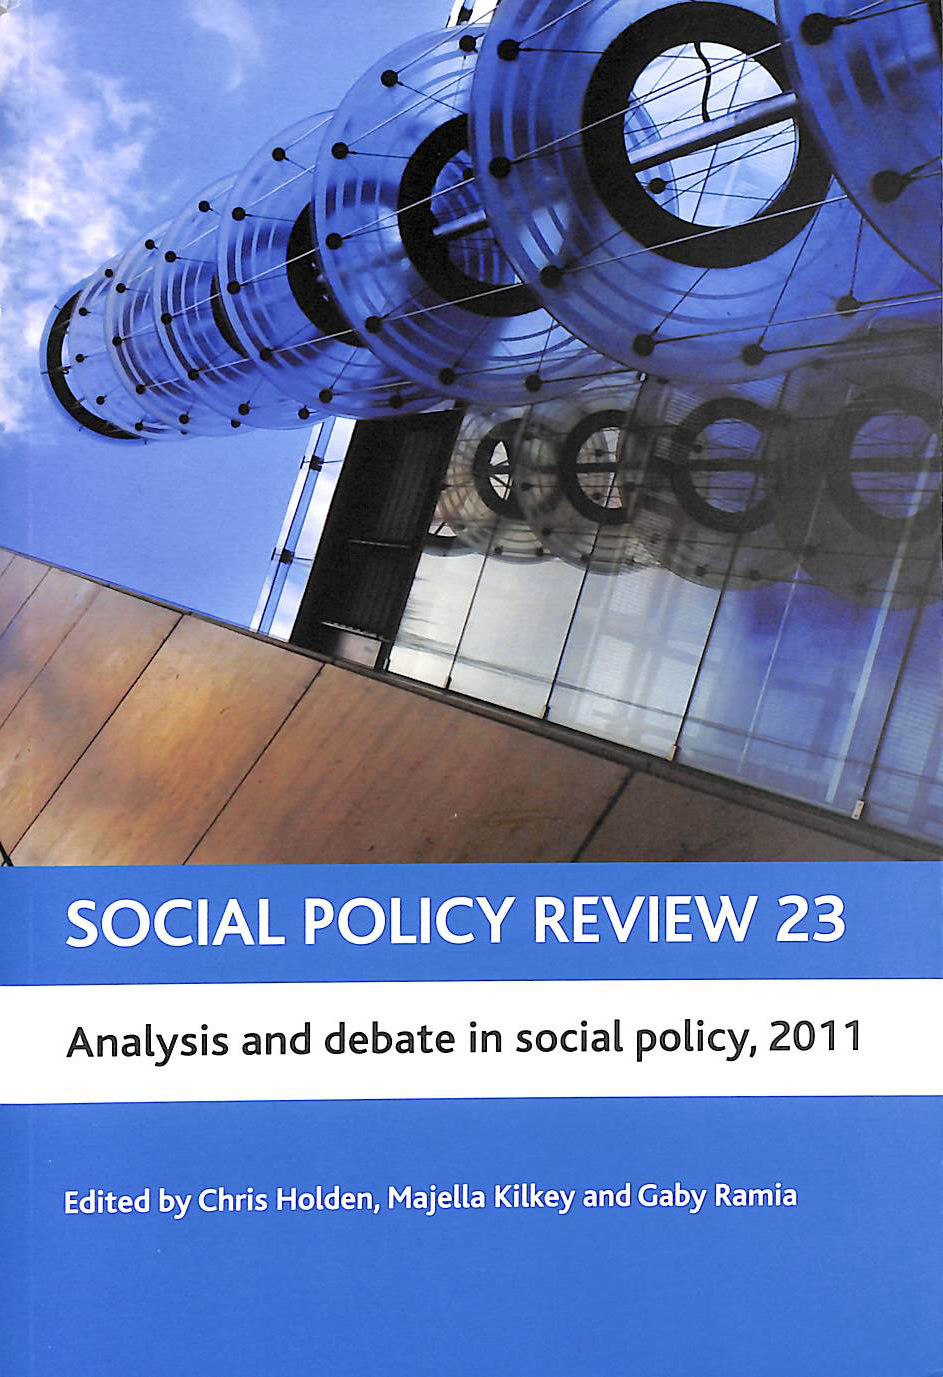 Image for Social Policy Review 23: Analysis and Debate in Social Policy, 2011 (Social Policy Review Series)